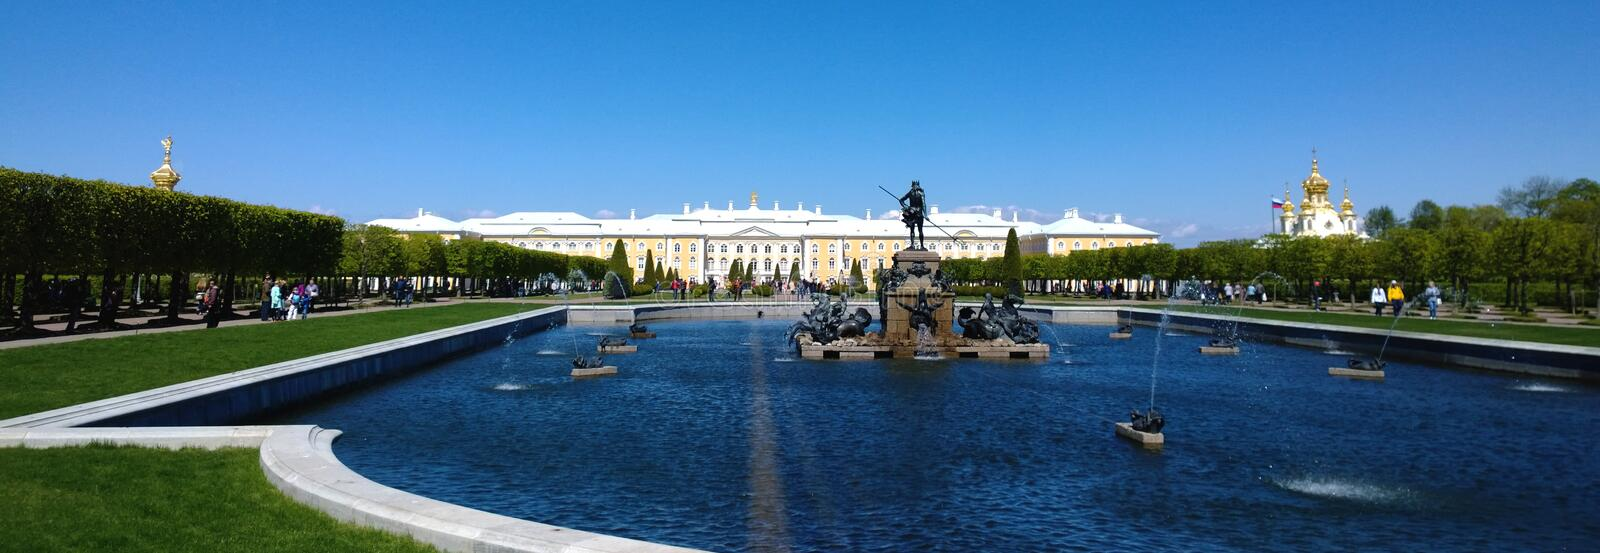 Palace in Peterhof. The view from the Upper Park. In the foreground a pond with small fountains. Summer, Sunny day stock image